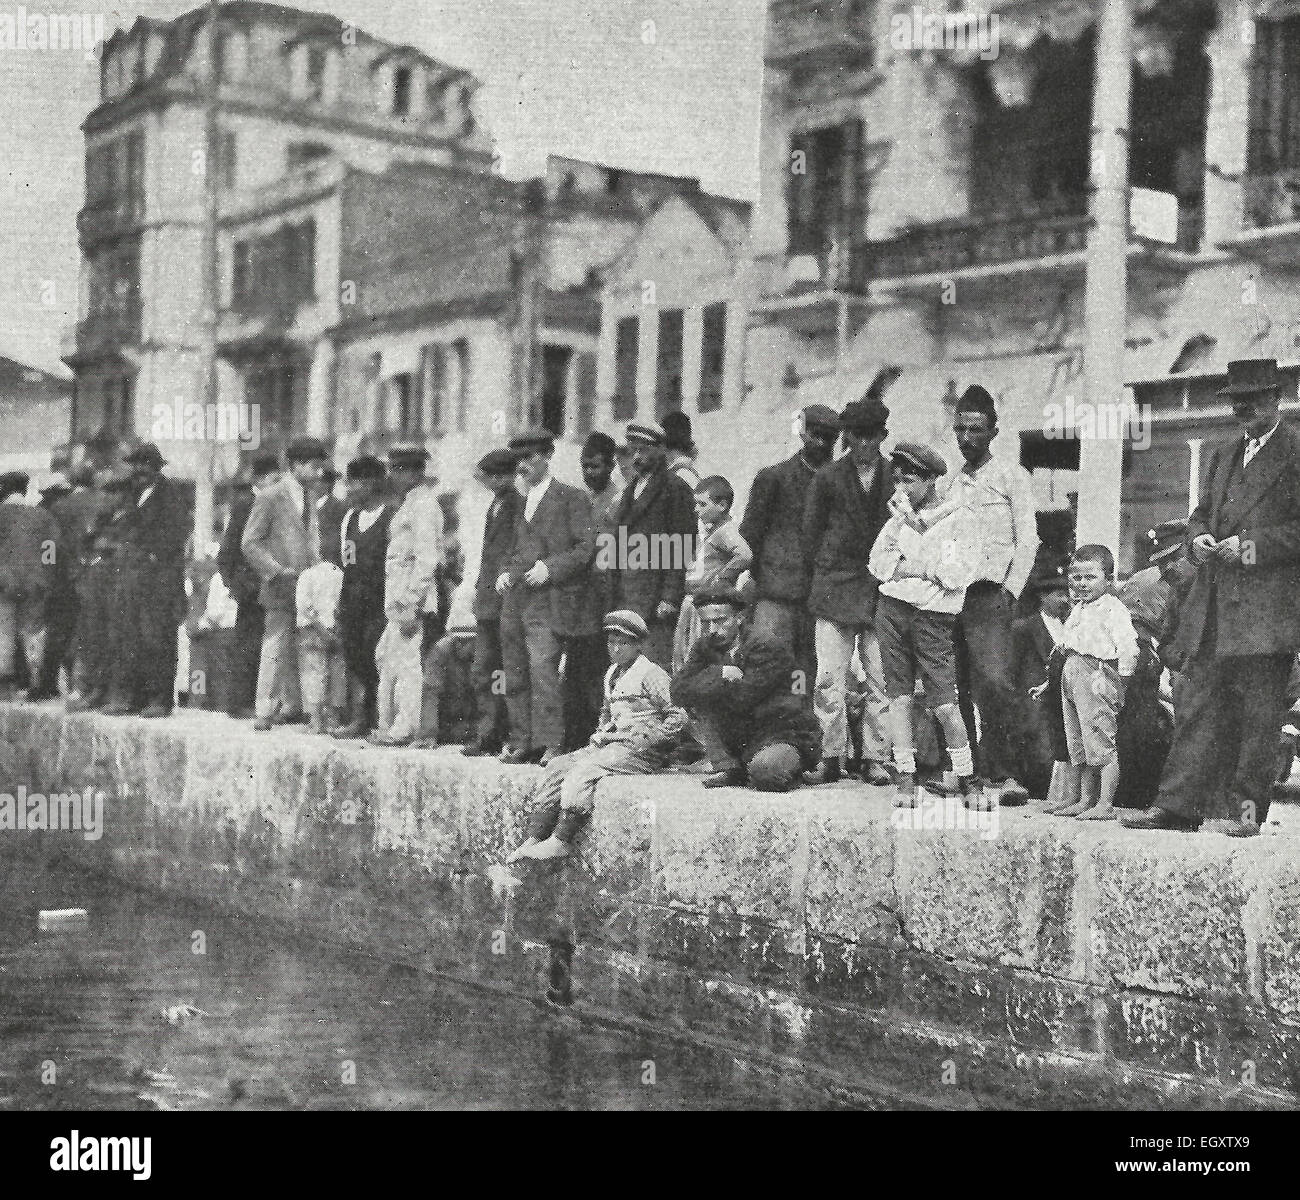 The Quay from which spies watched the Allies disembark - Salonika, Greece WWI, circa 1916 - Stock Image